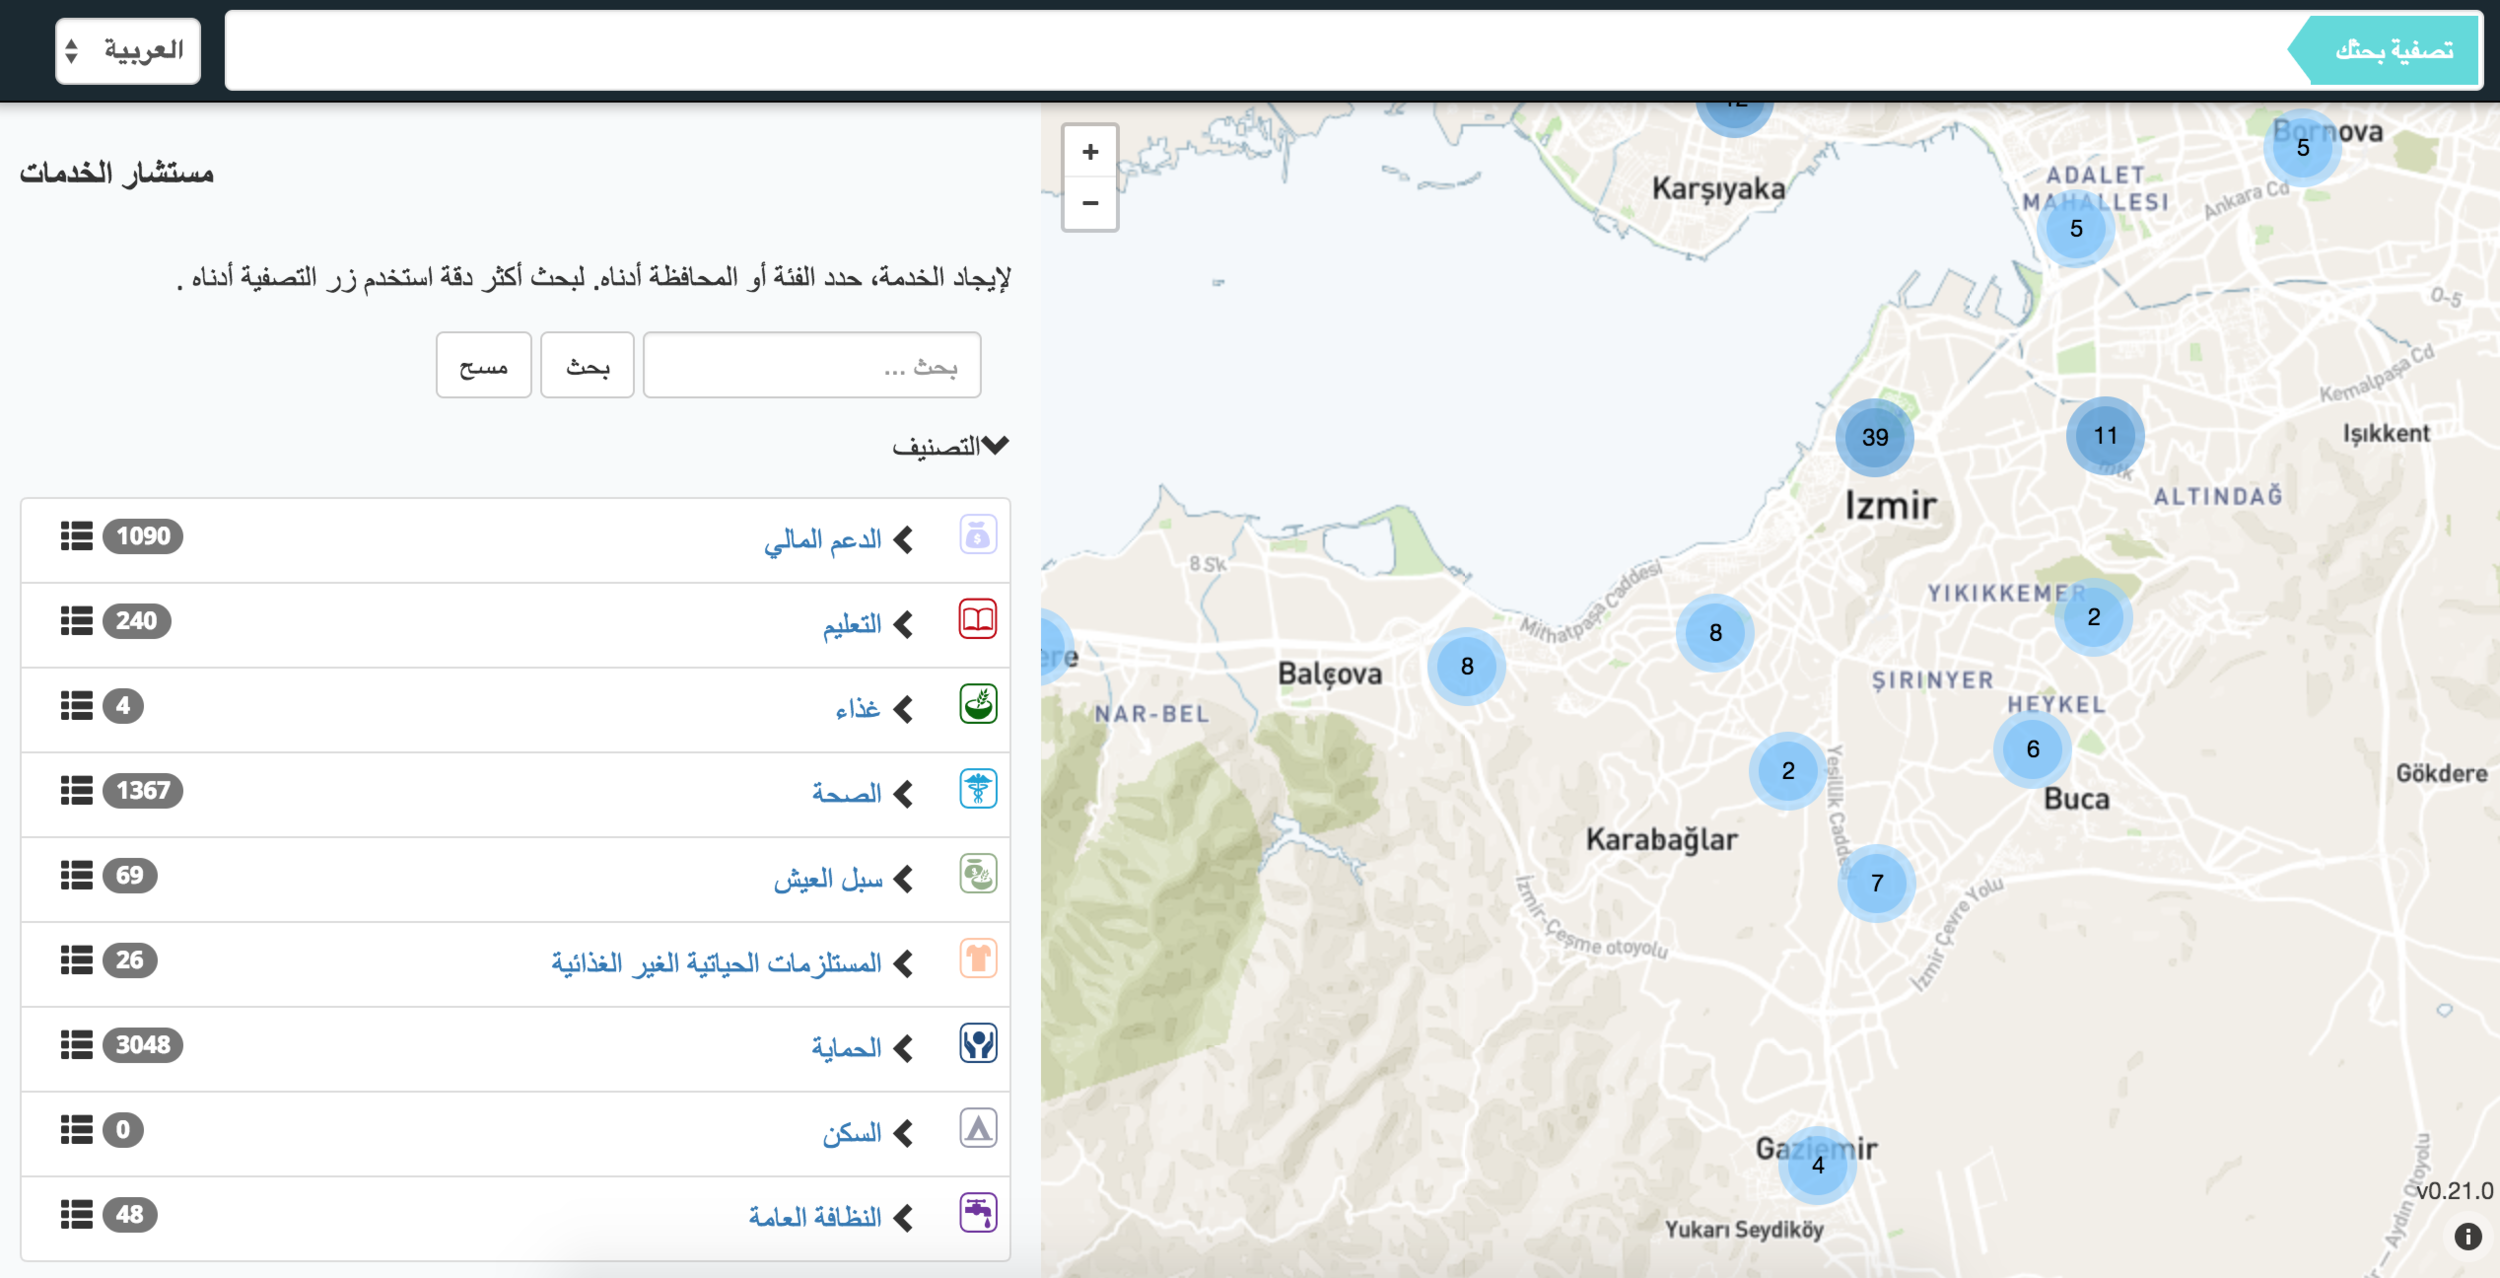 UNHCR has a digital online map of services  including healthcare, food and cash distribution, and shelter available across Turkey in Turkish, Arabic, and English. However, most refugees in Izmir have never heard of this map and rely on informal word of mouth to locate services.